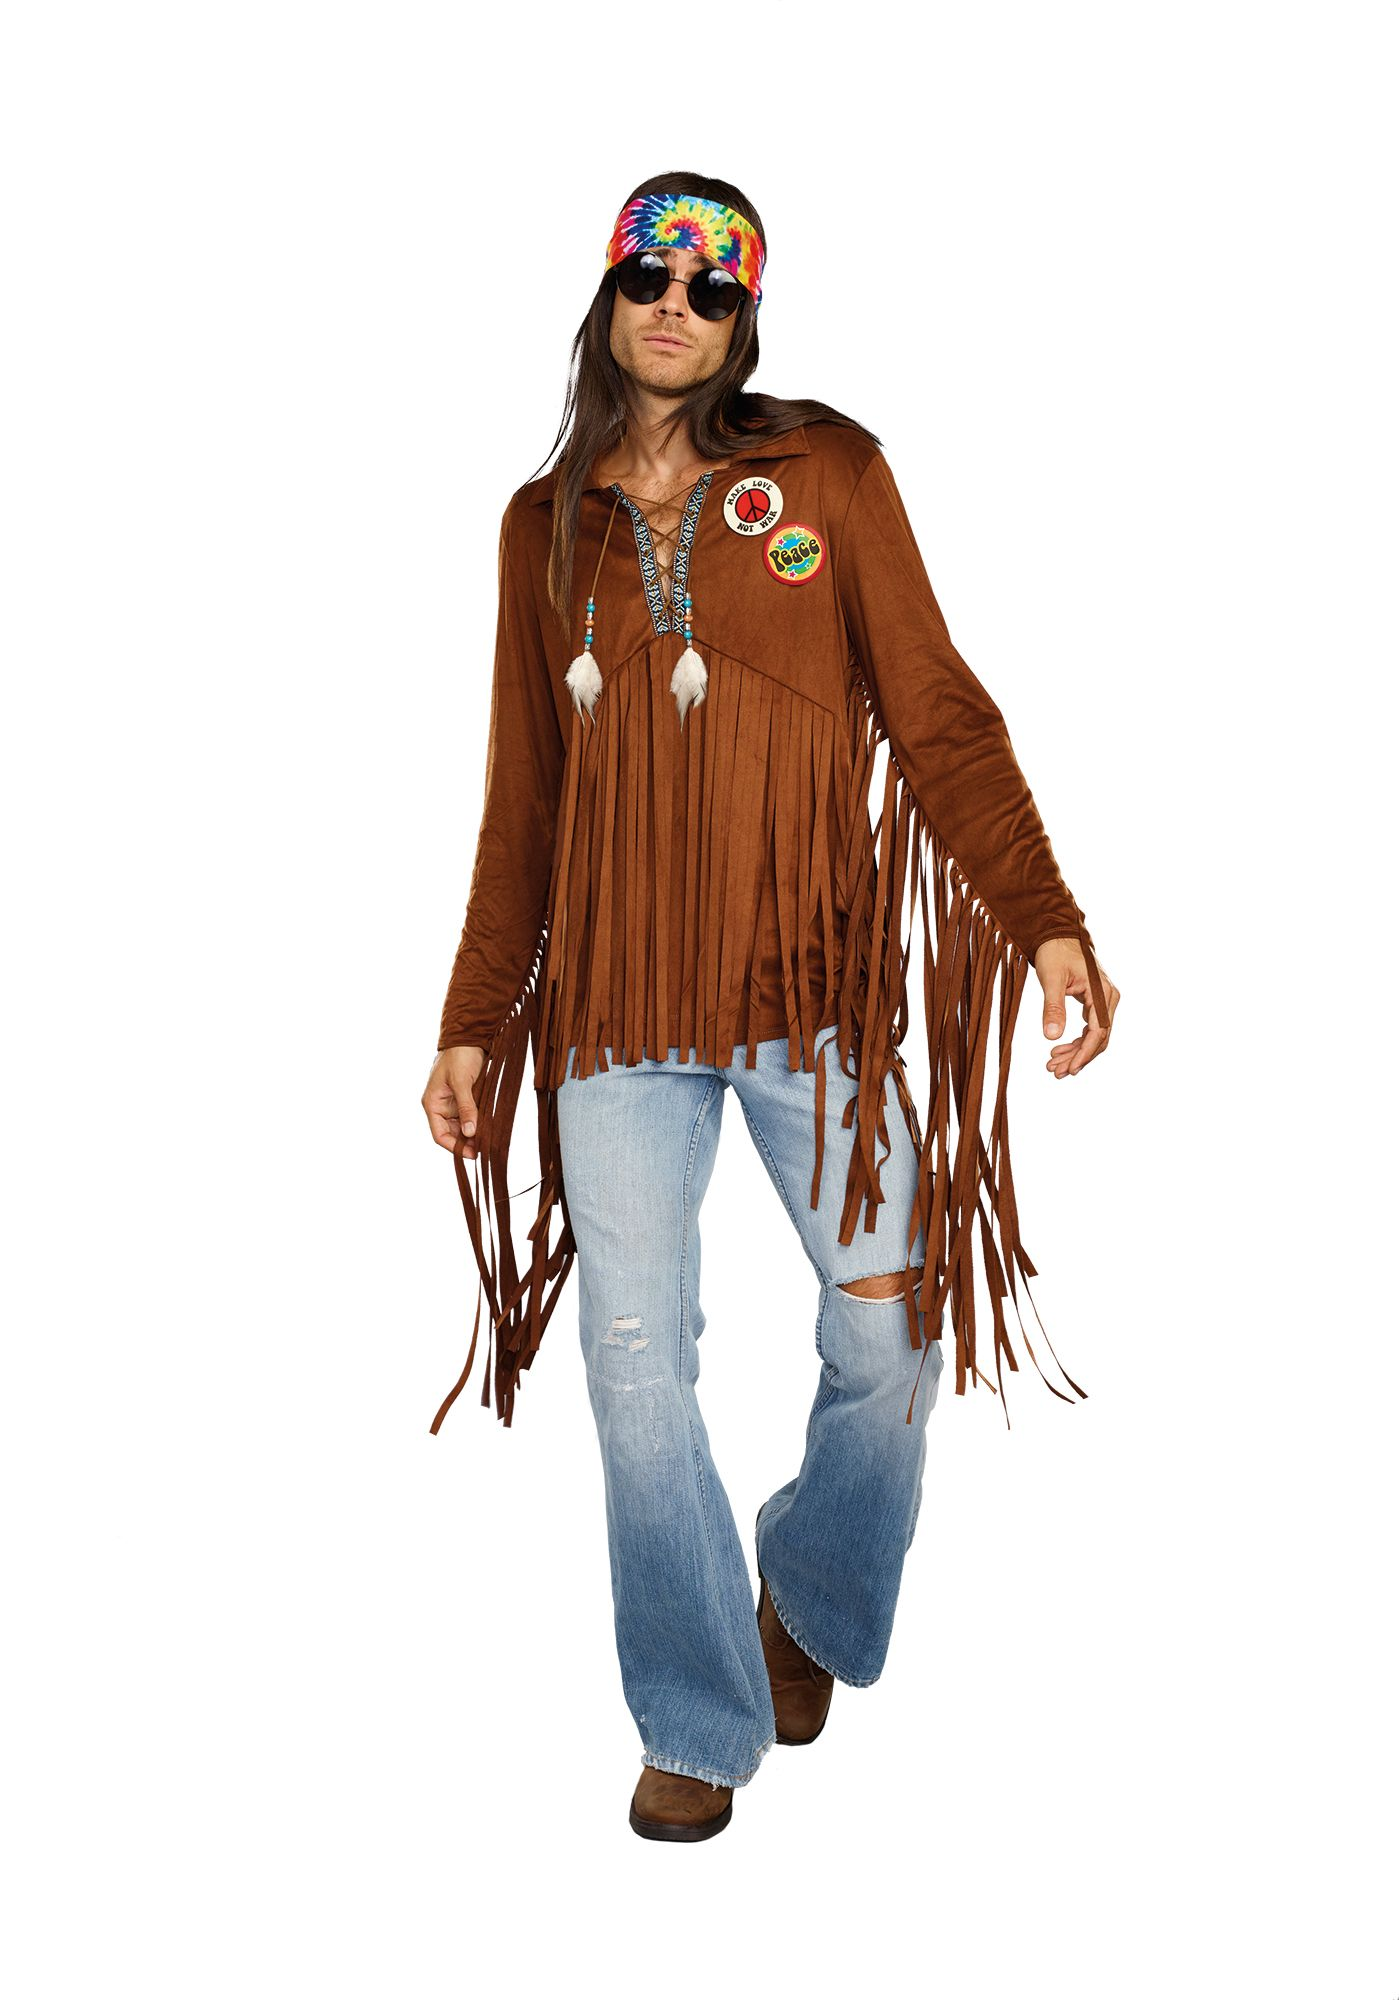 Hippie Dude Costume in 2020 (With images) Hippie outfits